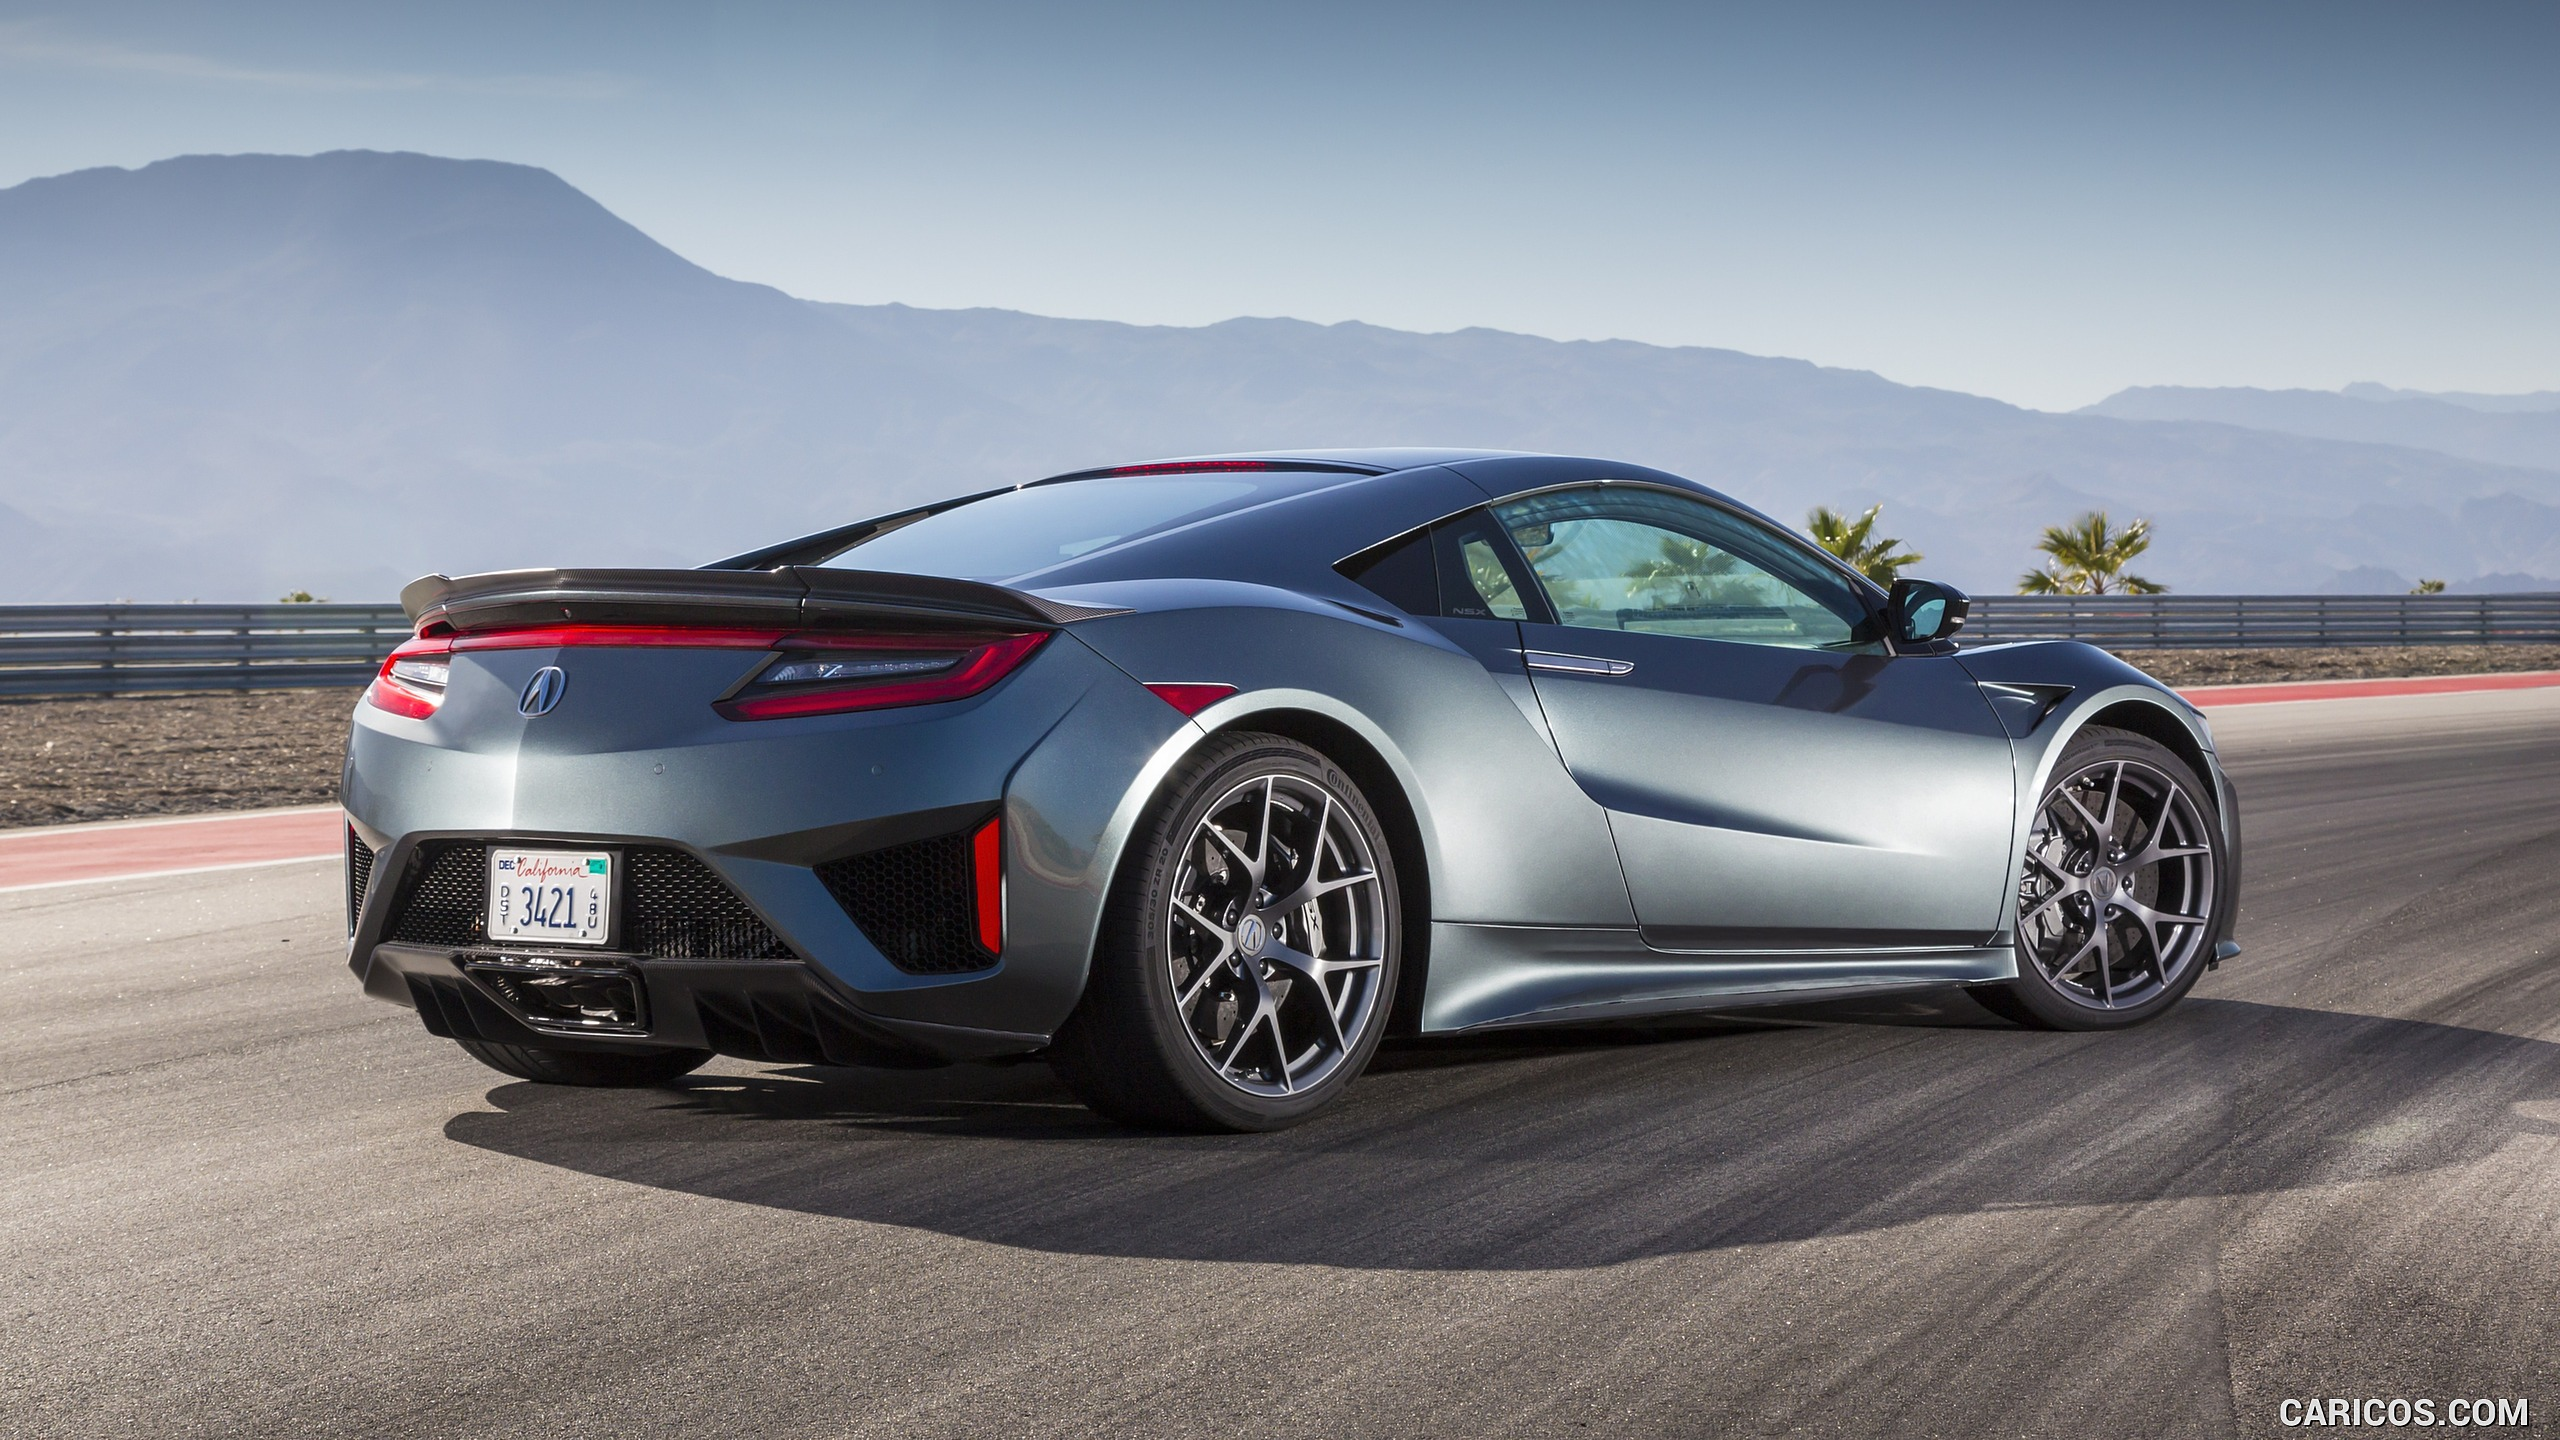 Could The Acura NSX Be The New Godzilla Super Car Killer